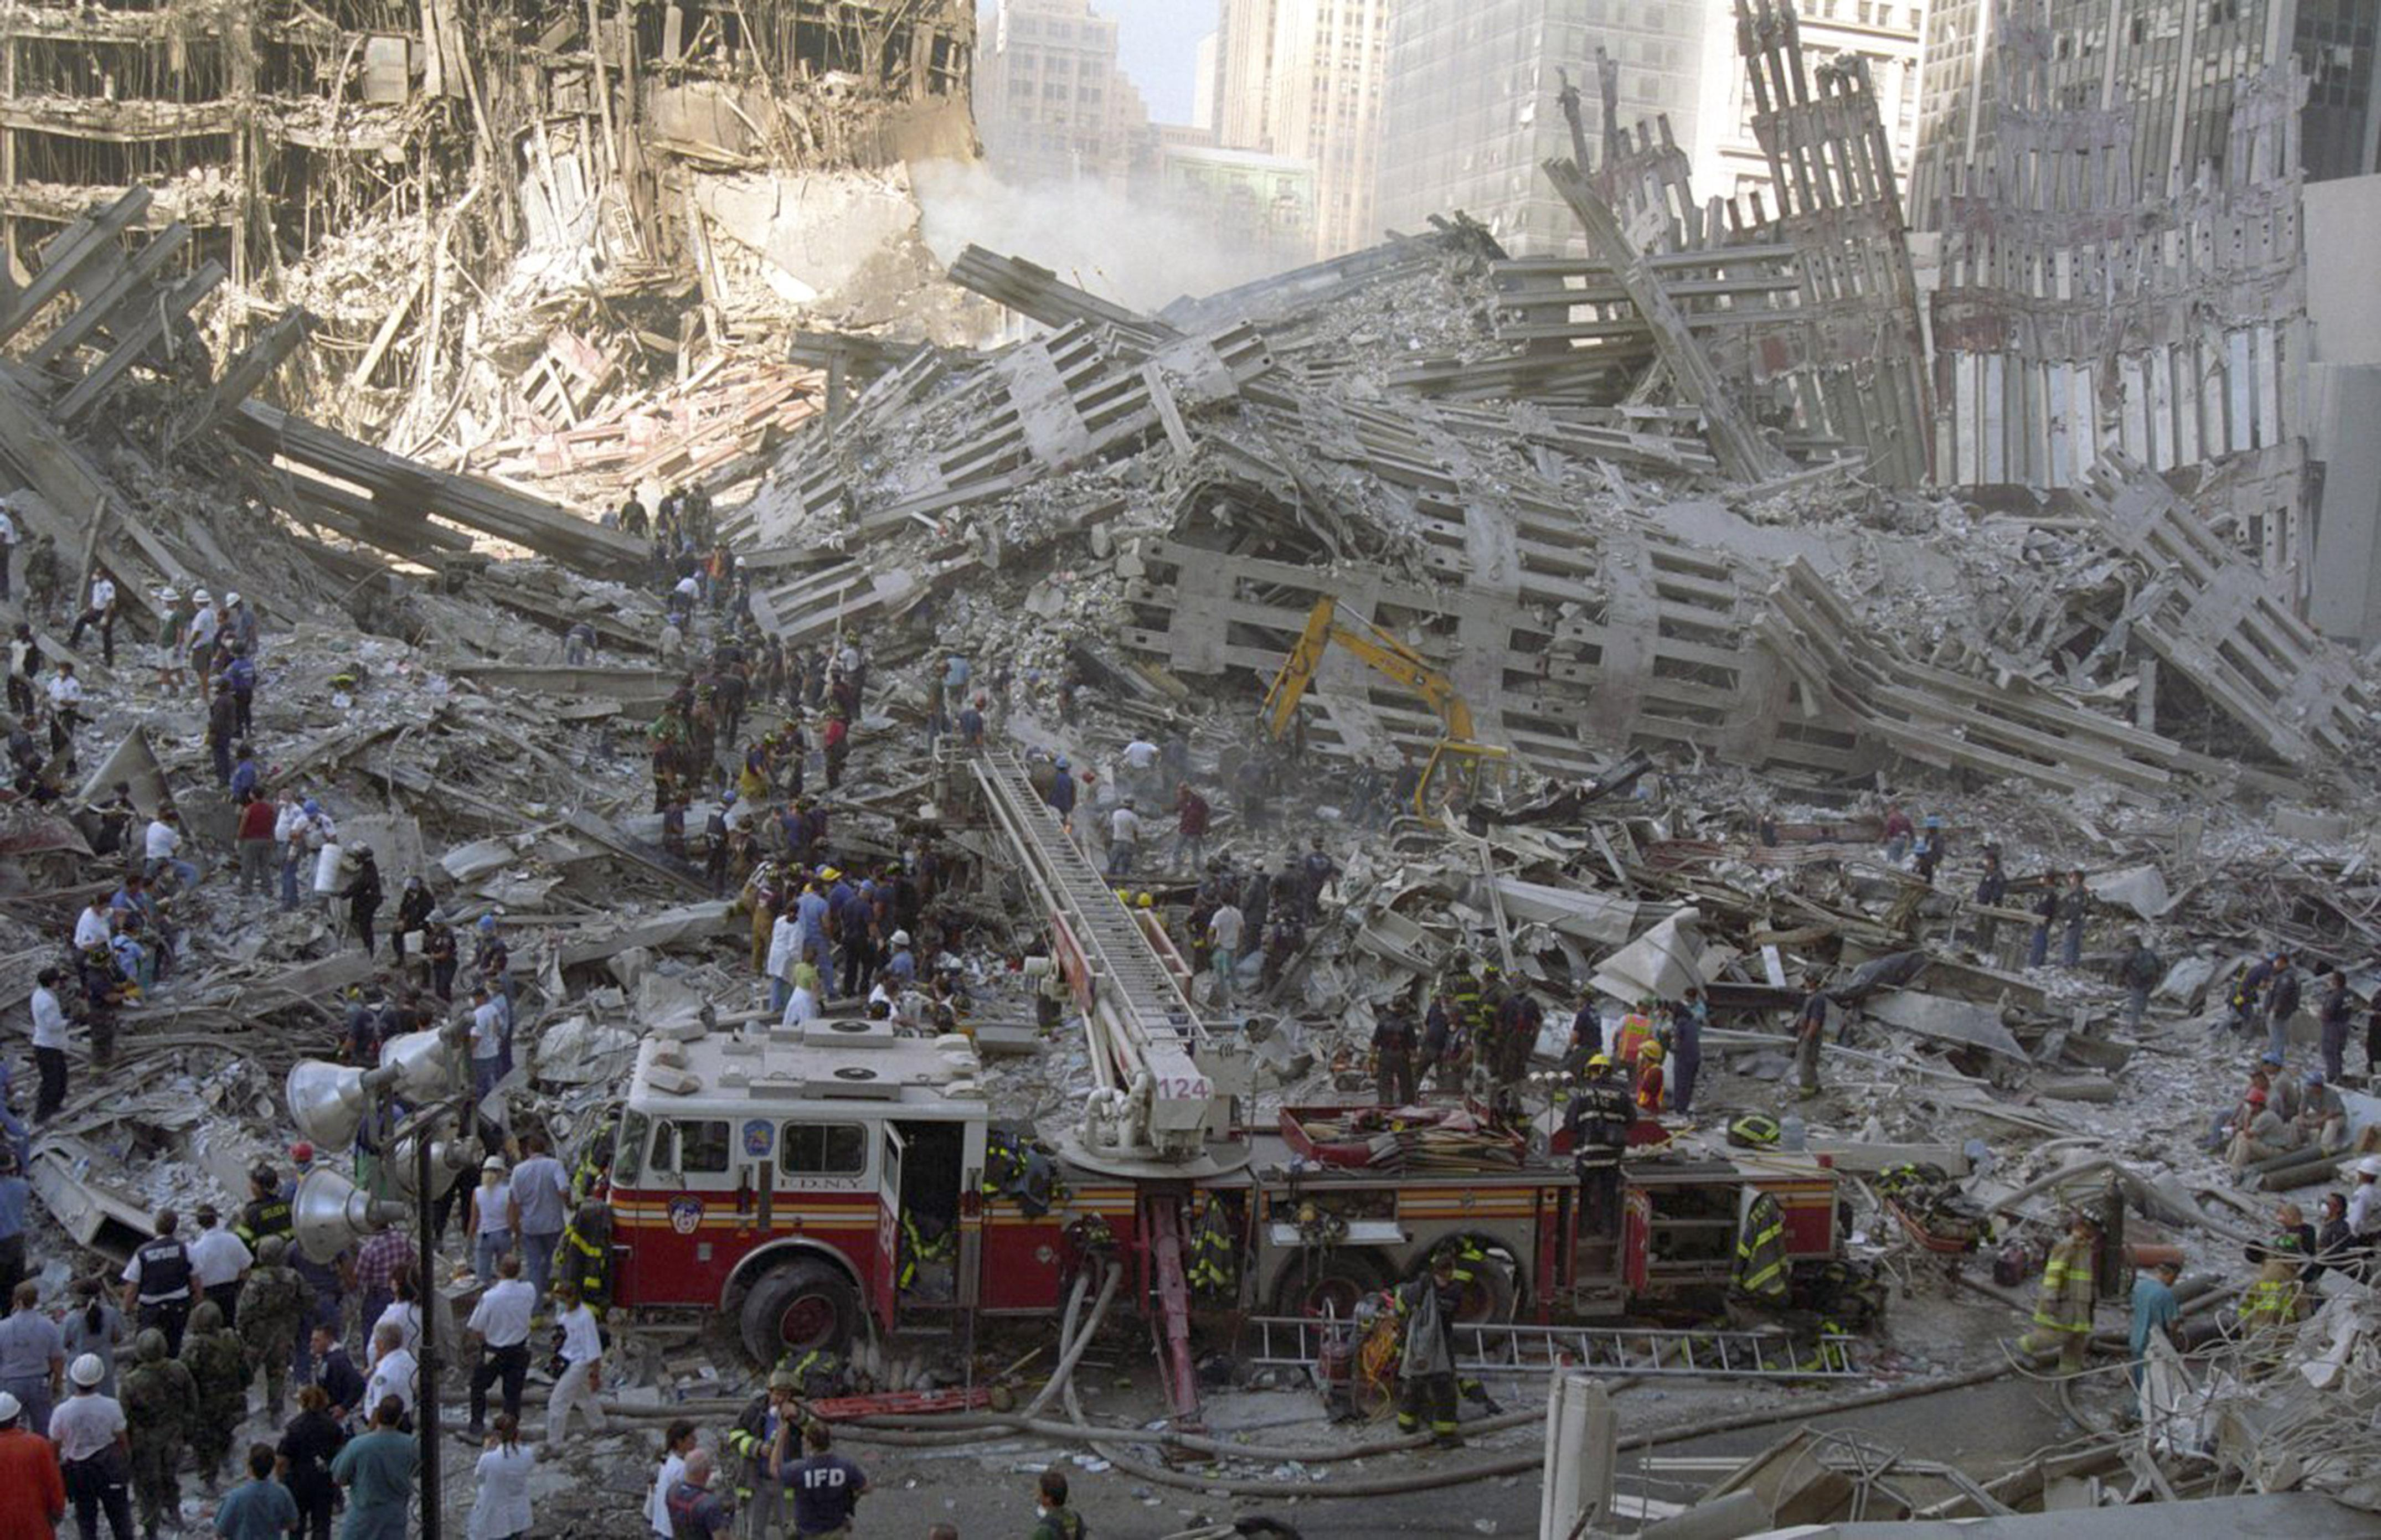 A fire engine is brought in to sift through the wreckage of one of the towers. (Caters)